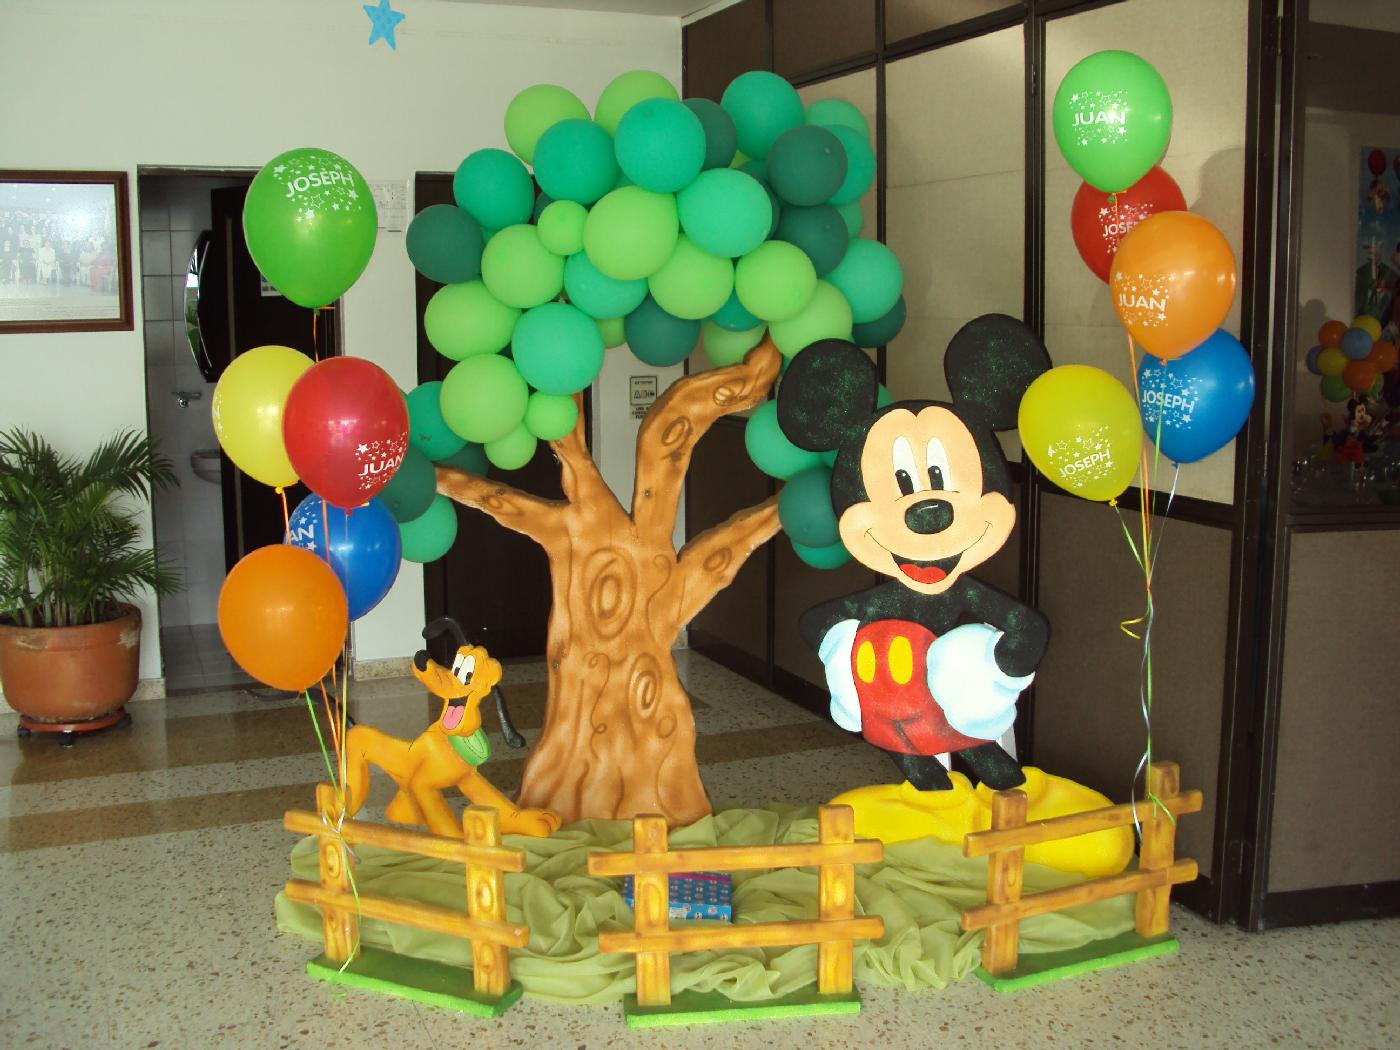 Mickey mouse decoracion de globos for Globos decoracion fiestas